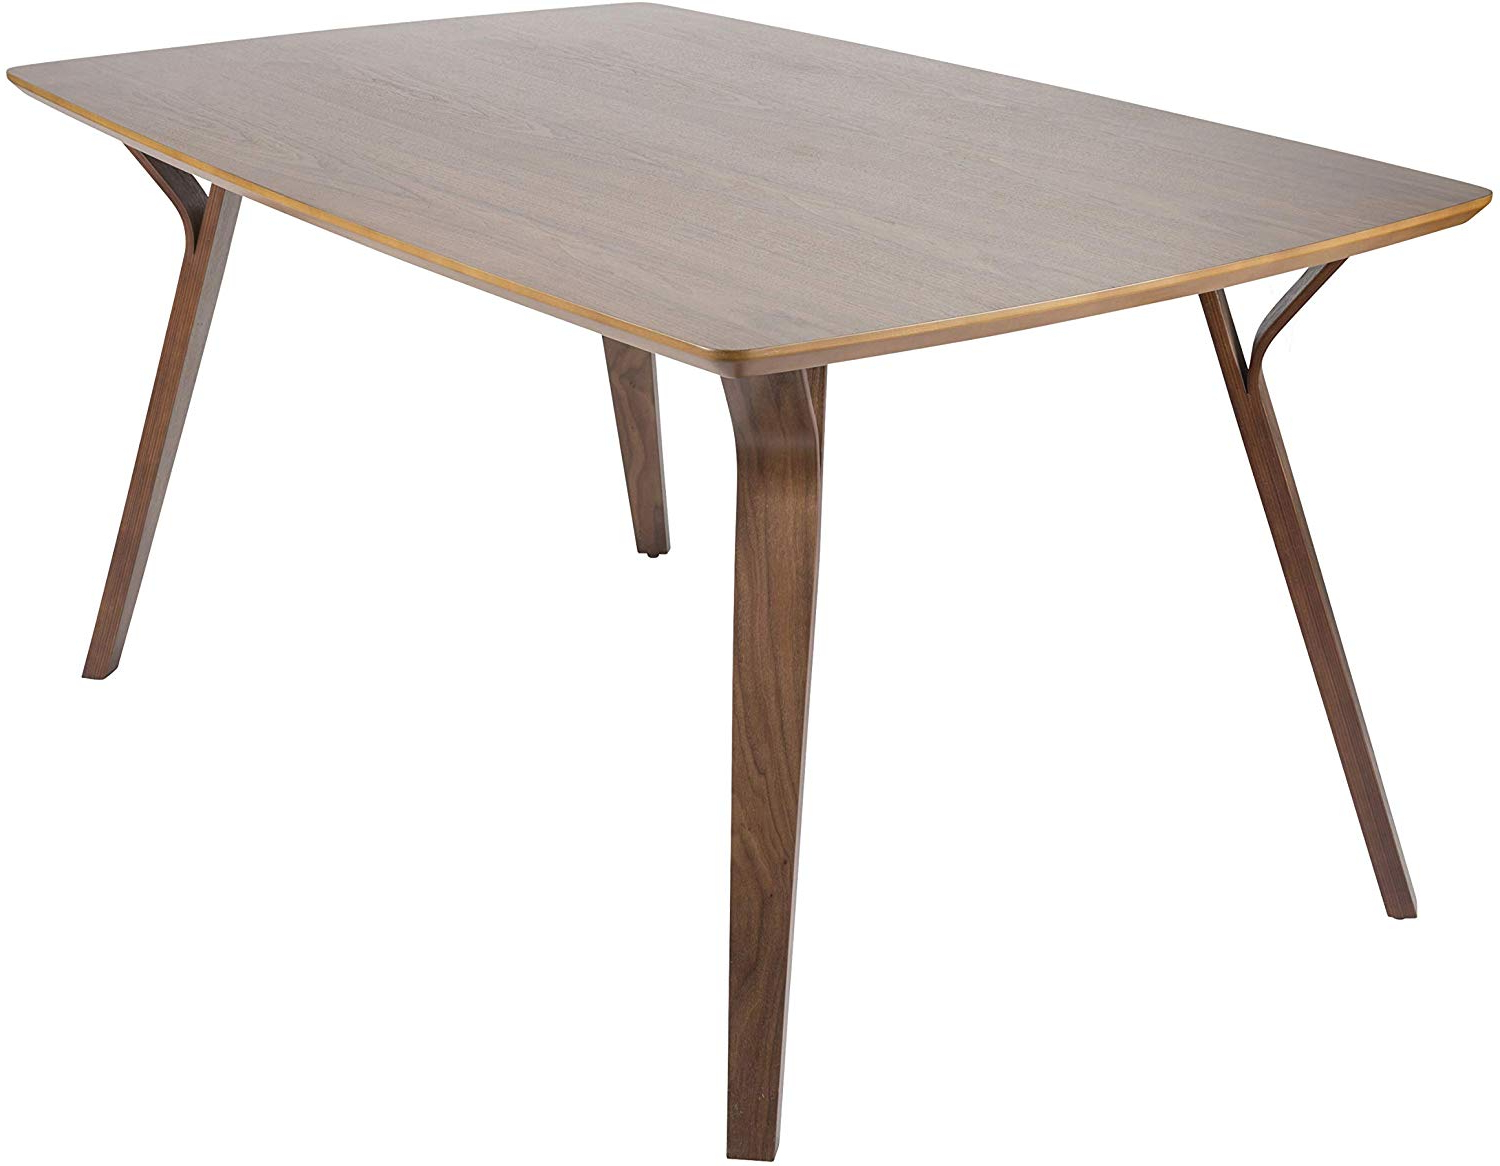 Distressed Walnut And Black Finish Wood Modern Country Dining Tables Pertaining To Recent Amazon – Lumisource Mid Century Modern Dining Table In (View 8 of 30)